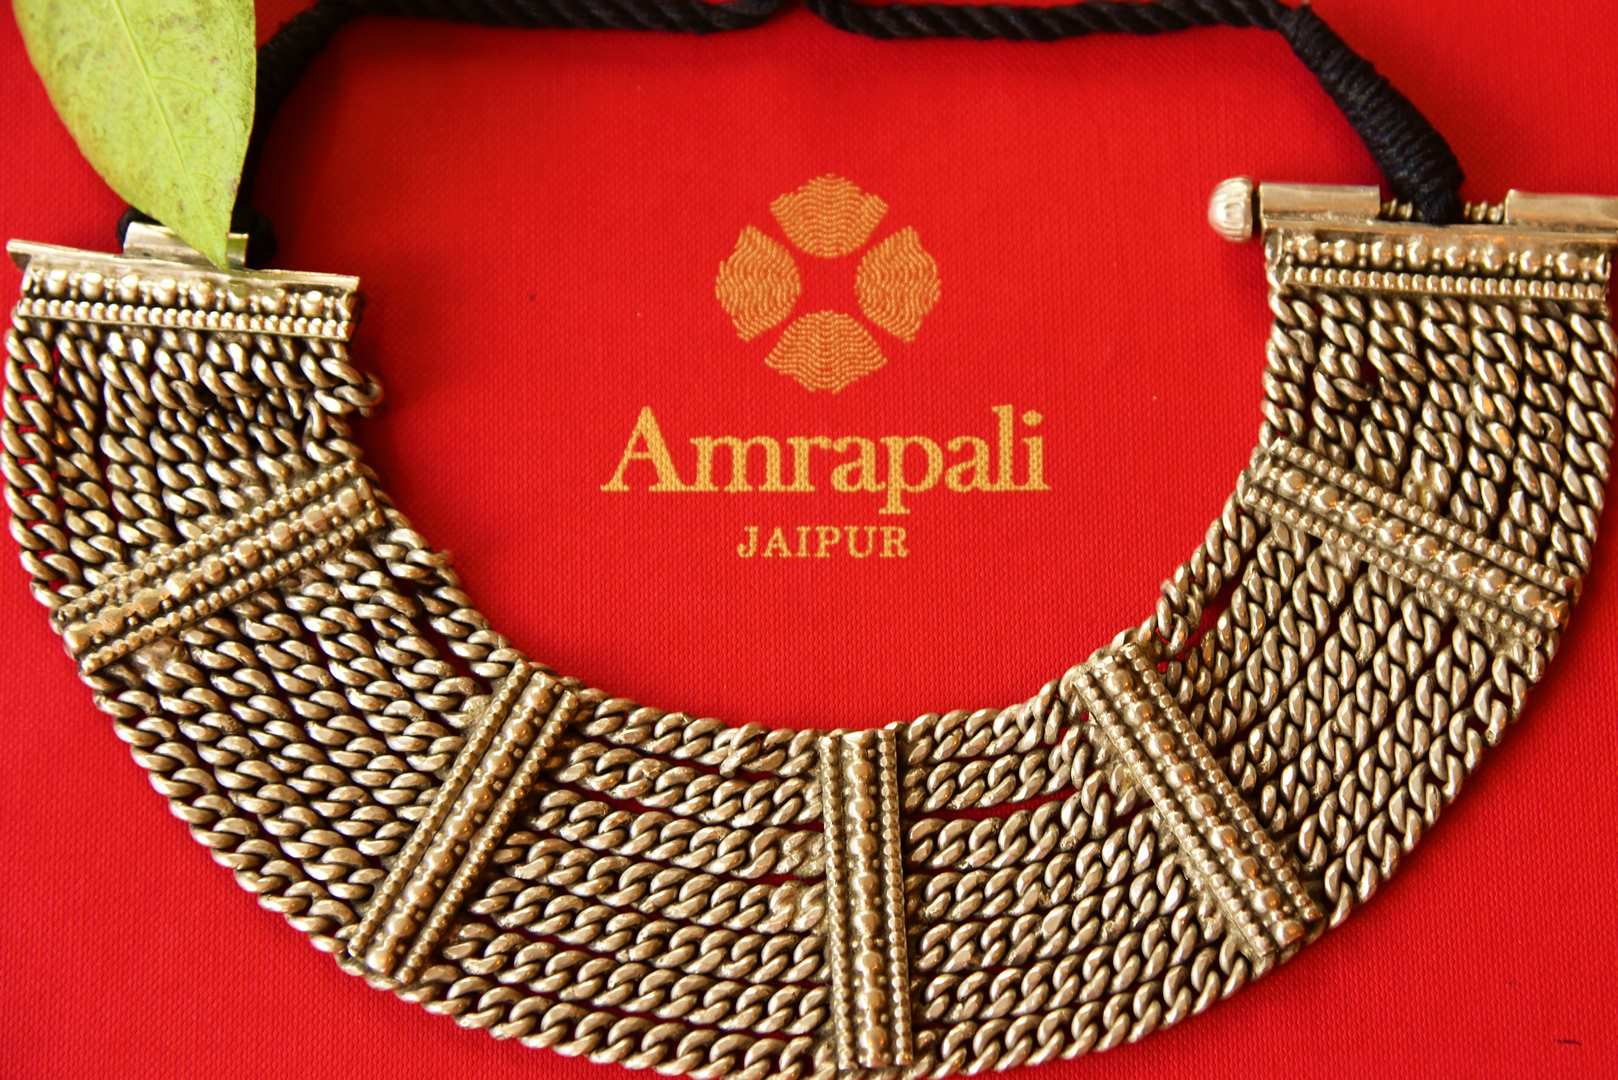 Buy Amrapali mutli chain silver necklace online in USA. Pure Elegance fashion store brings an alluring range of ethnic Indian silver gold plated jewelry in USA.-closeup